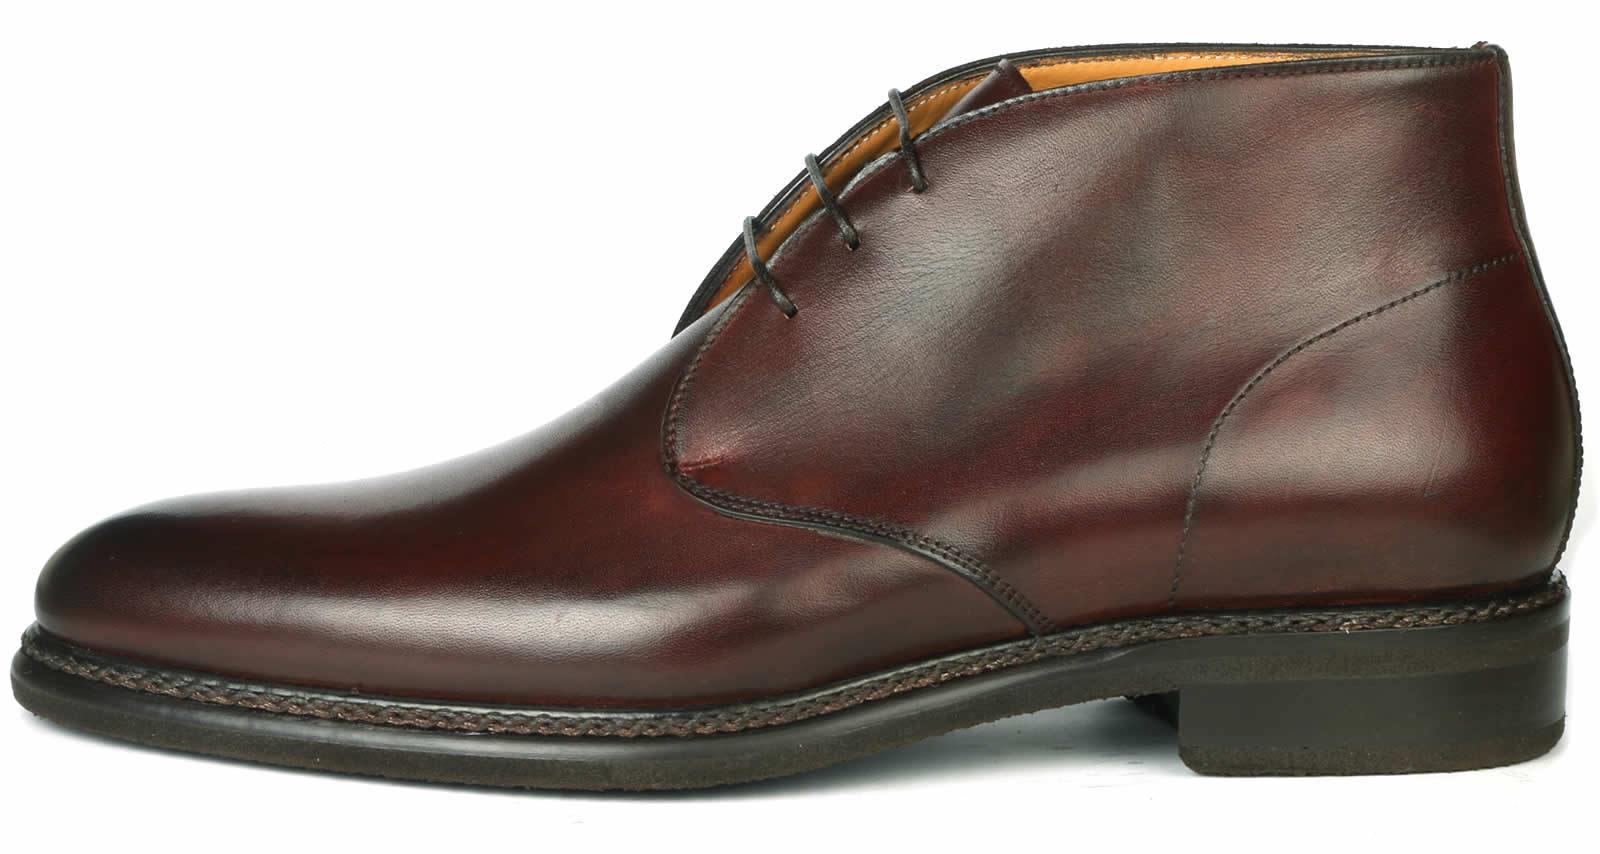 Hamilton Chukka Boot S - Conker Brown